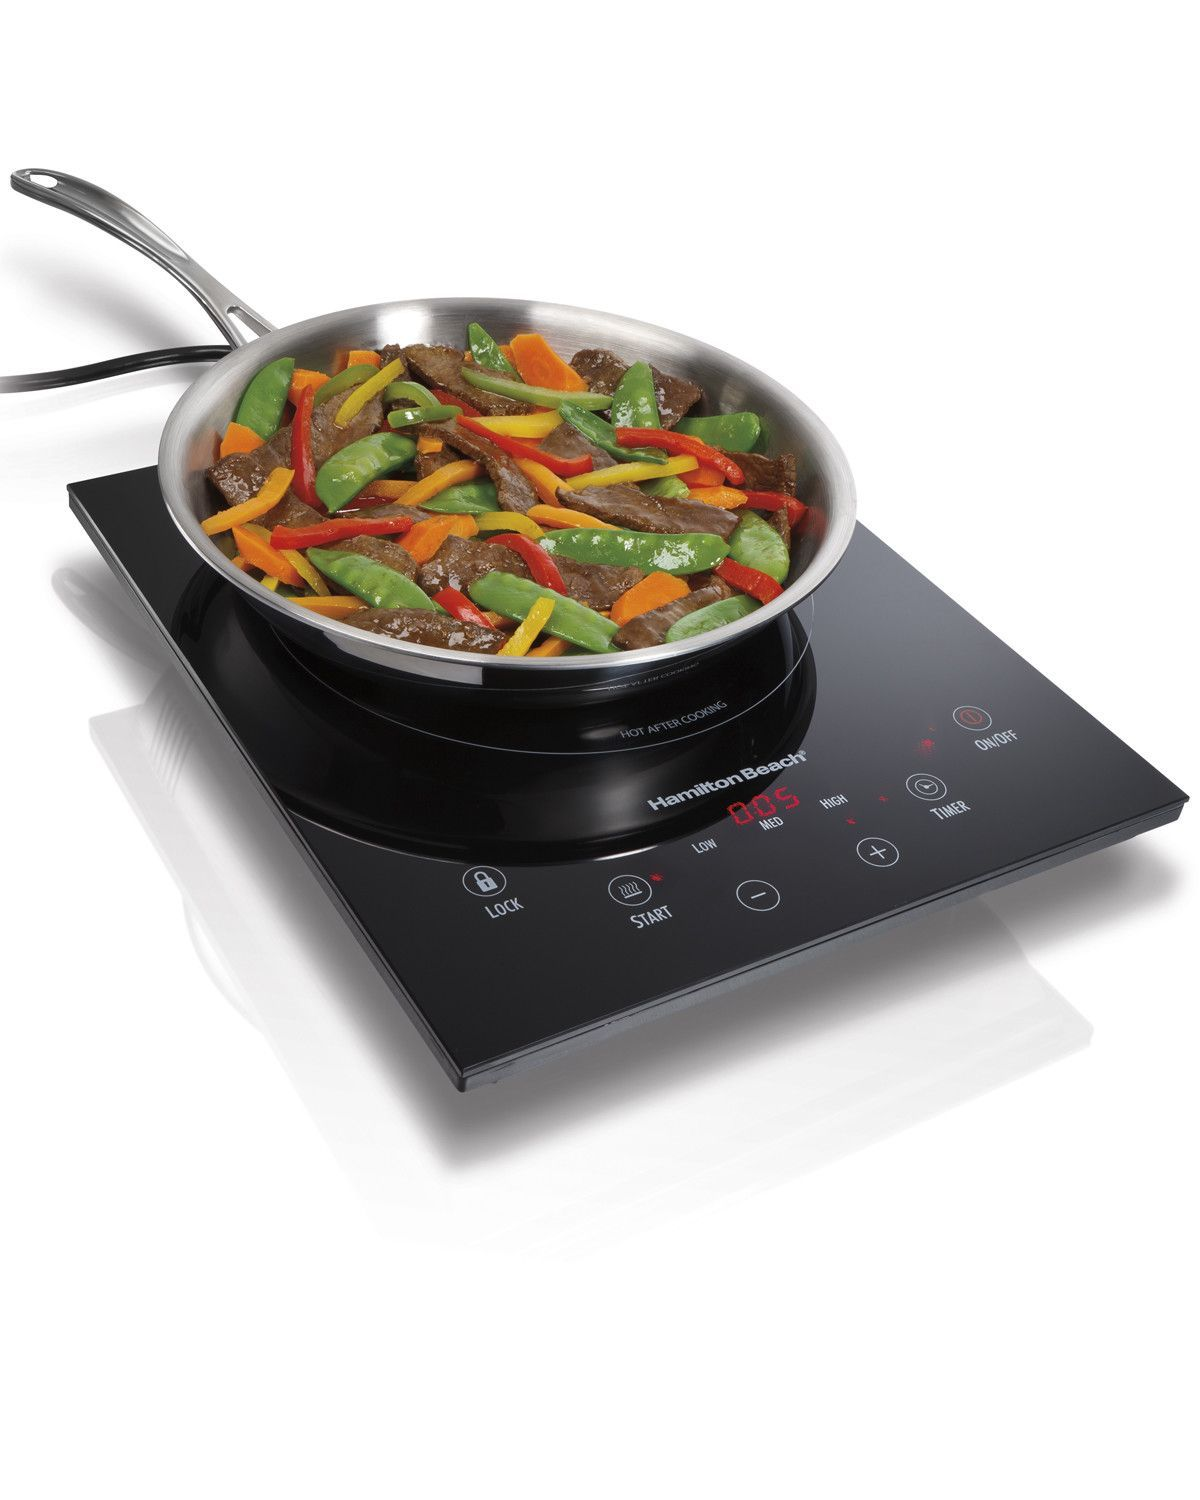 Fagor 1800w portable induction cooker 670041900 price tracking - Fagor 1800w Portable Induction Cooker 670041900 Price Tracking 39